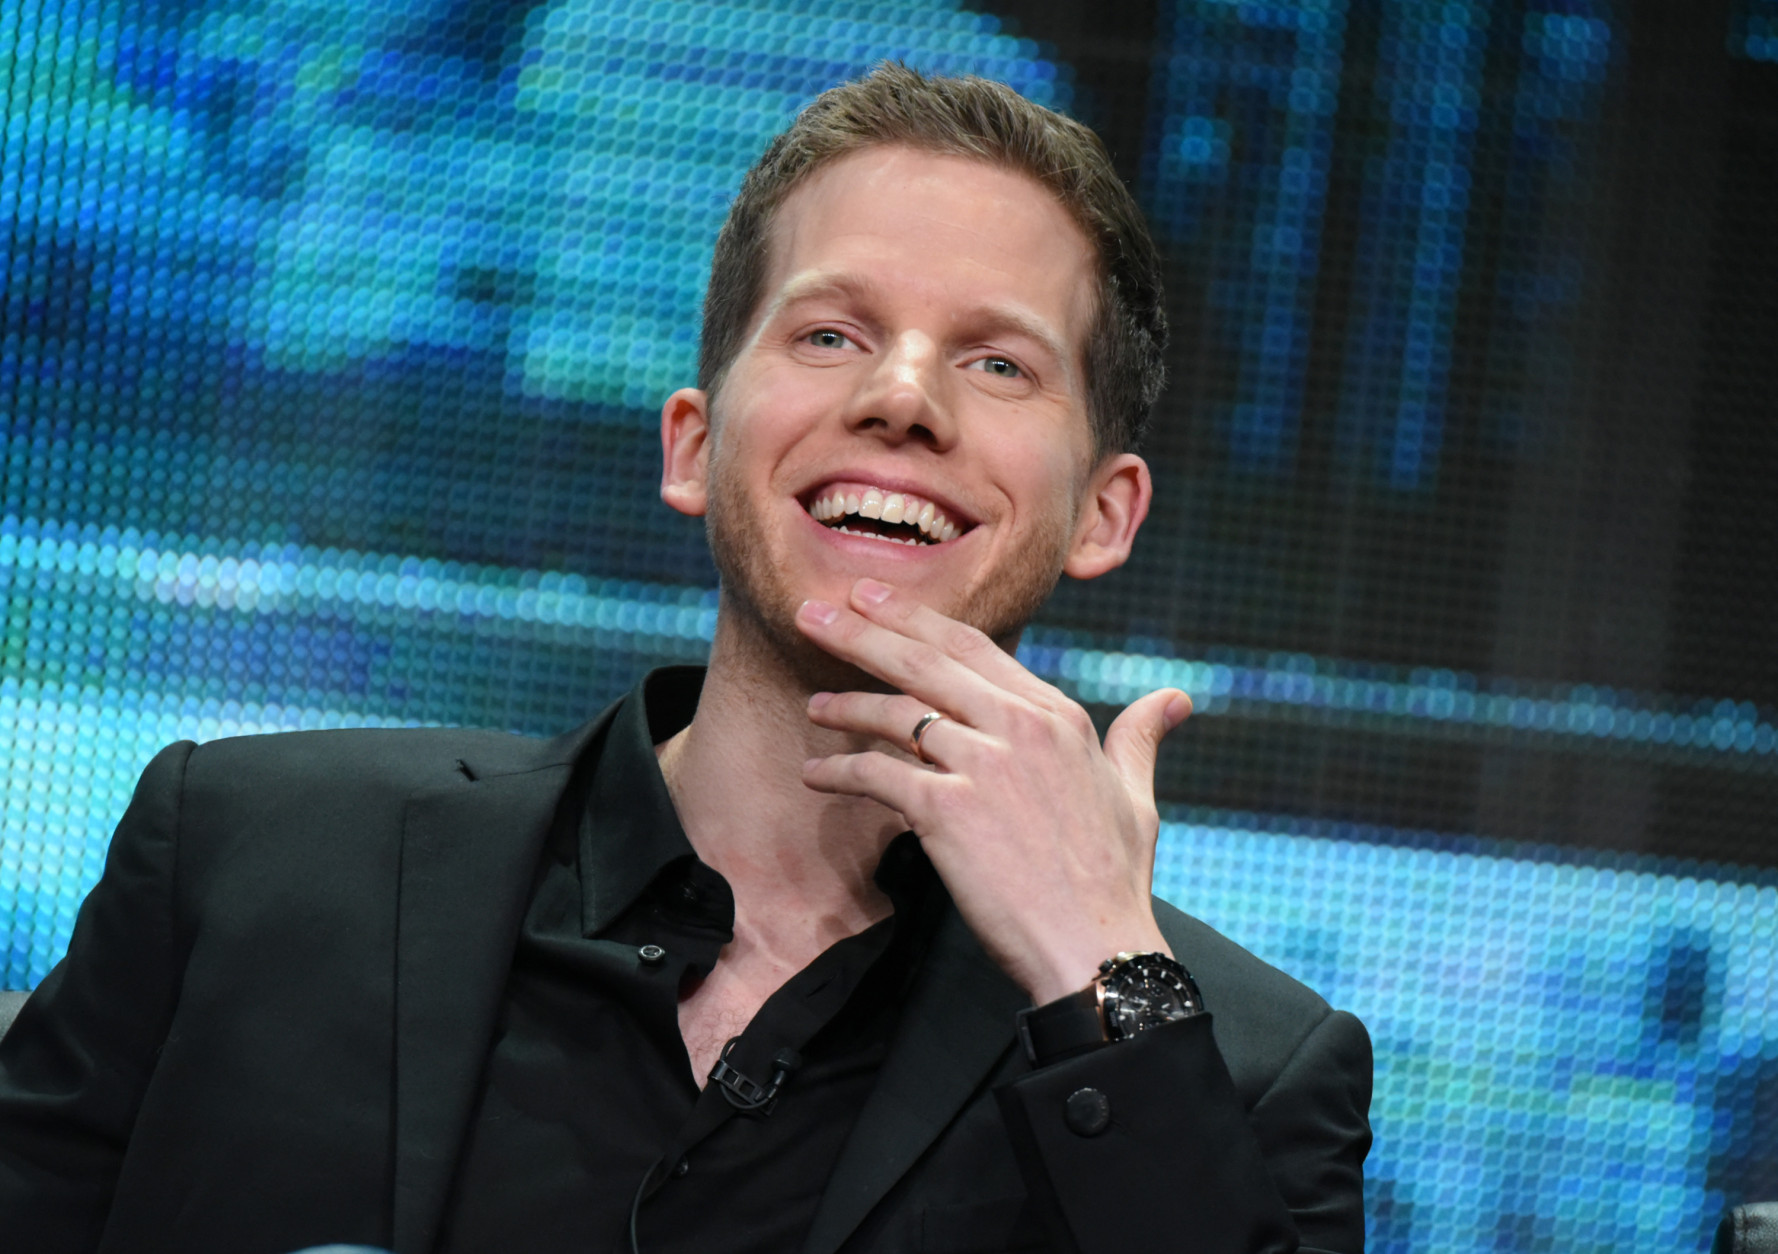 """Stark Sands participates in the """"Minority Report"""" panel at the Fox Summer TCA Tour at the Beverly Hilton Hotel on Thursday, Aug. 6, 2015, in Beverly Hills, Calif. (Photo by Richard Shotwell/Invision/AP)"""